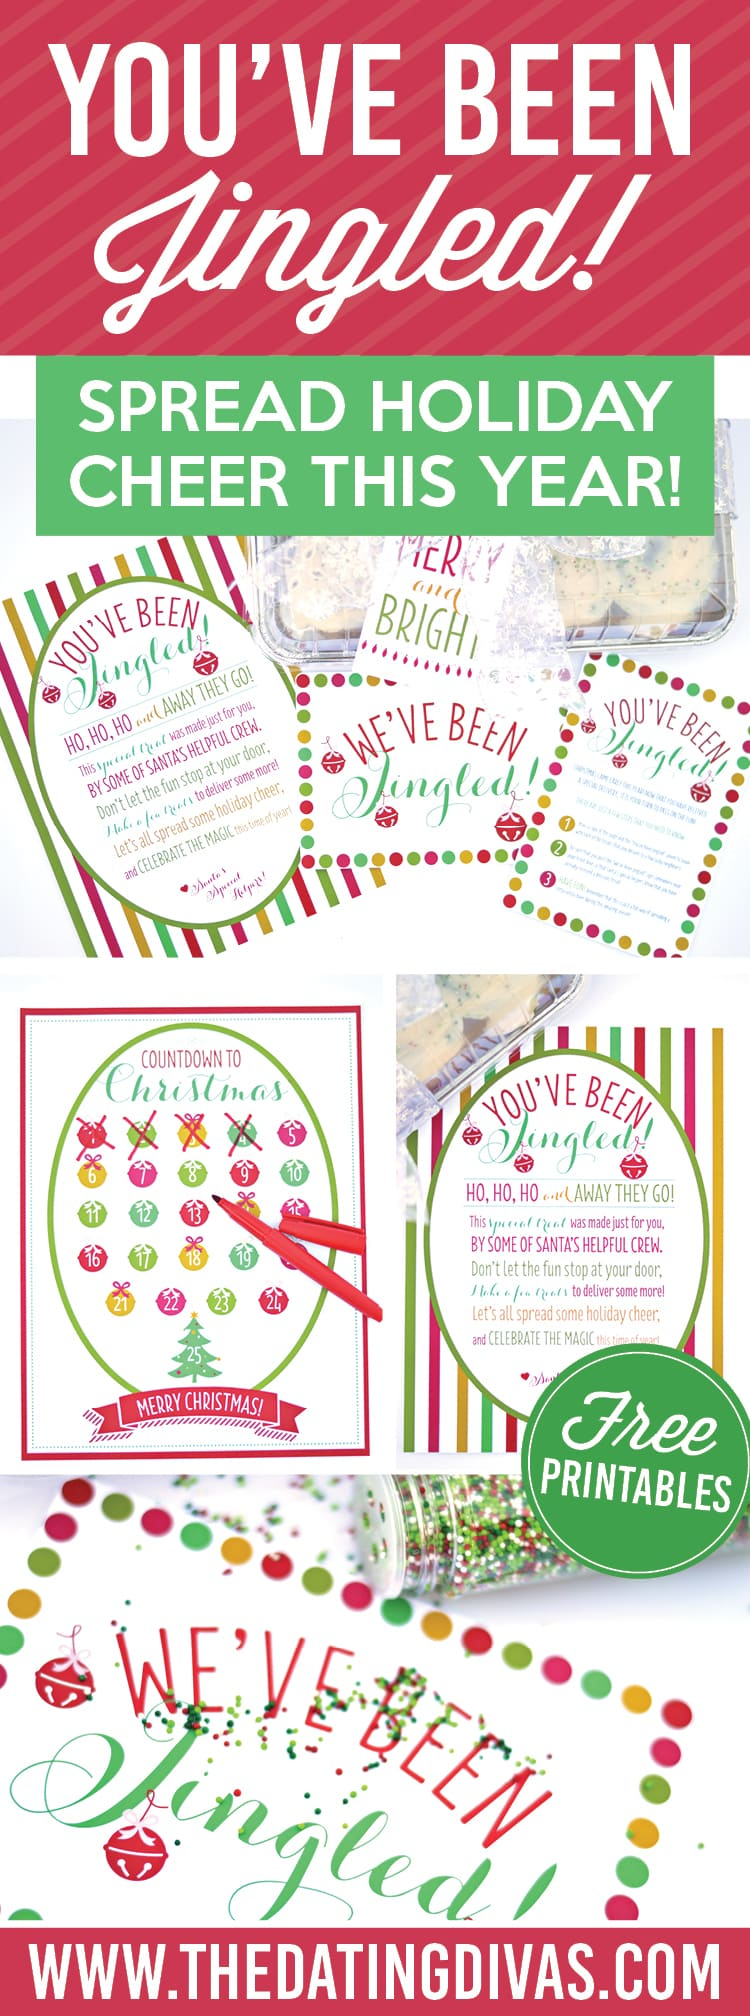 picture about You've Been Elfed Free Printable referred to as Youve Been Jingled! - A Xmas Lifestyle!